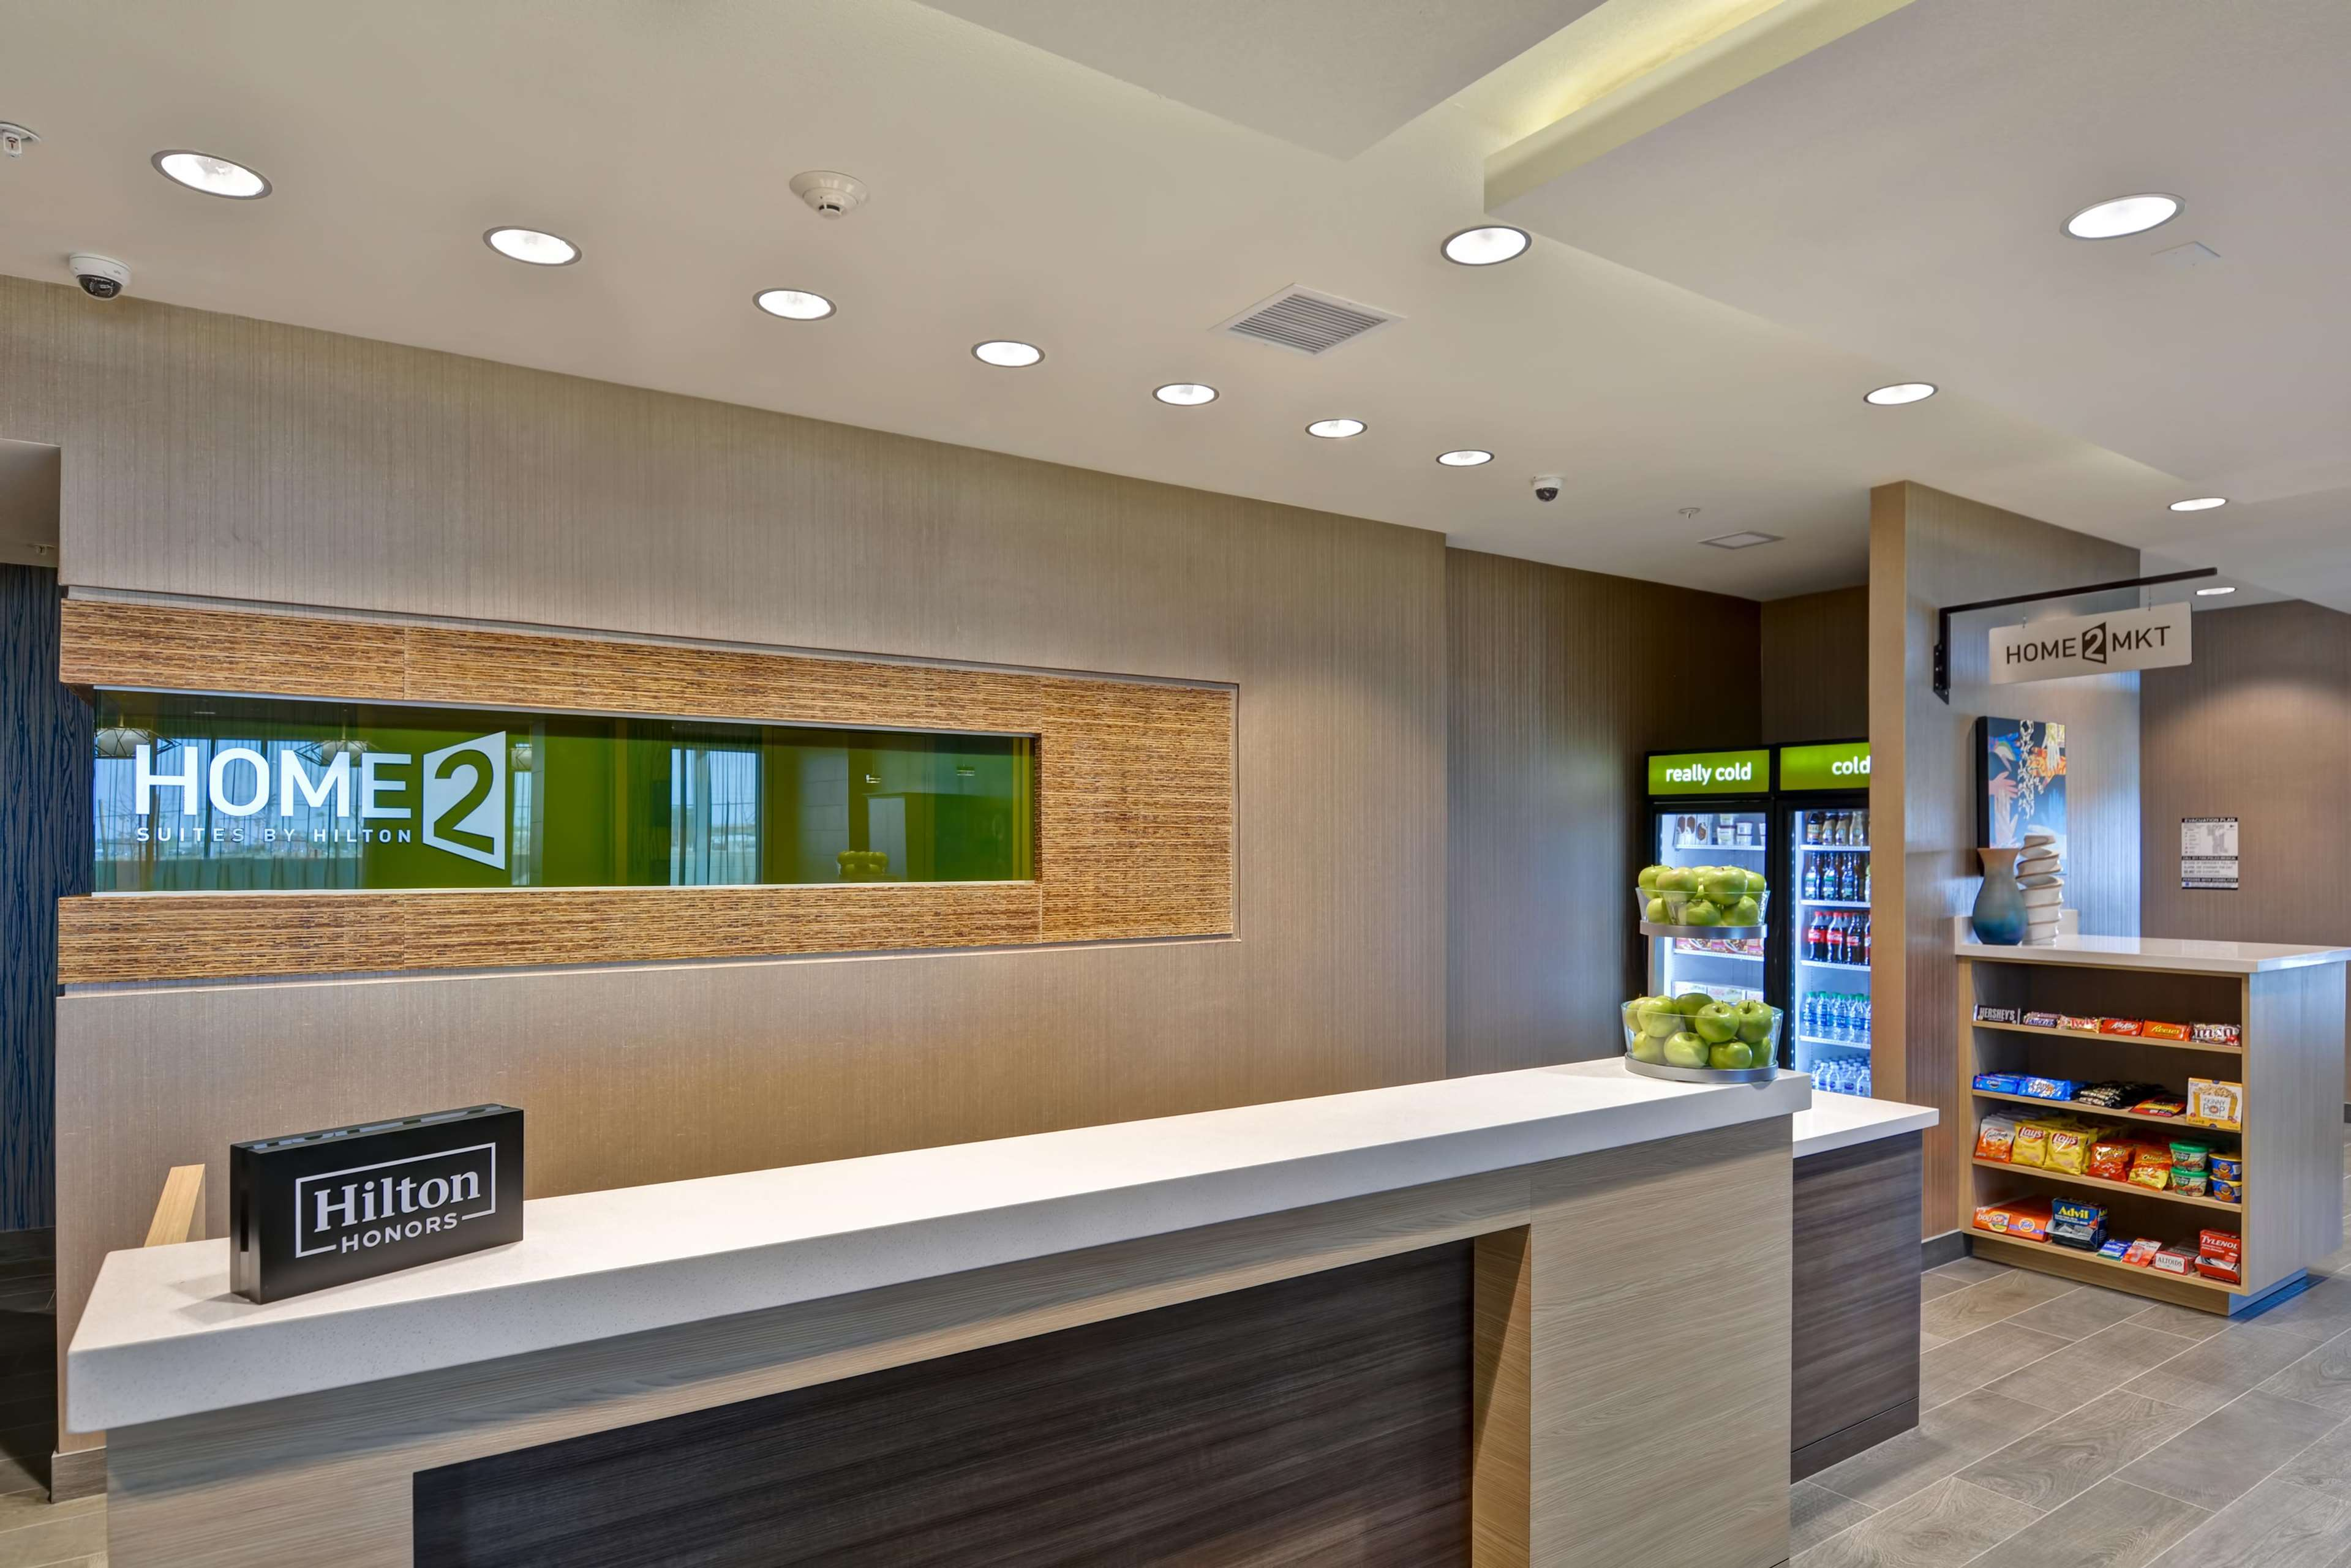 Home2 Suites by Hilton Palmdale image 4